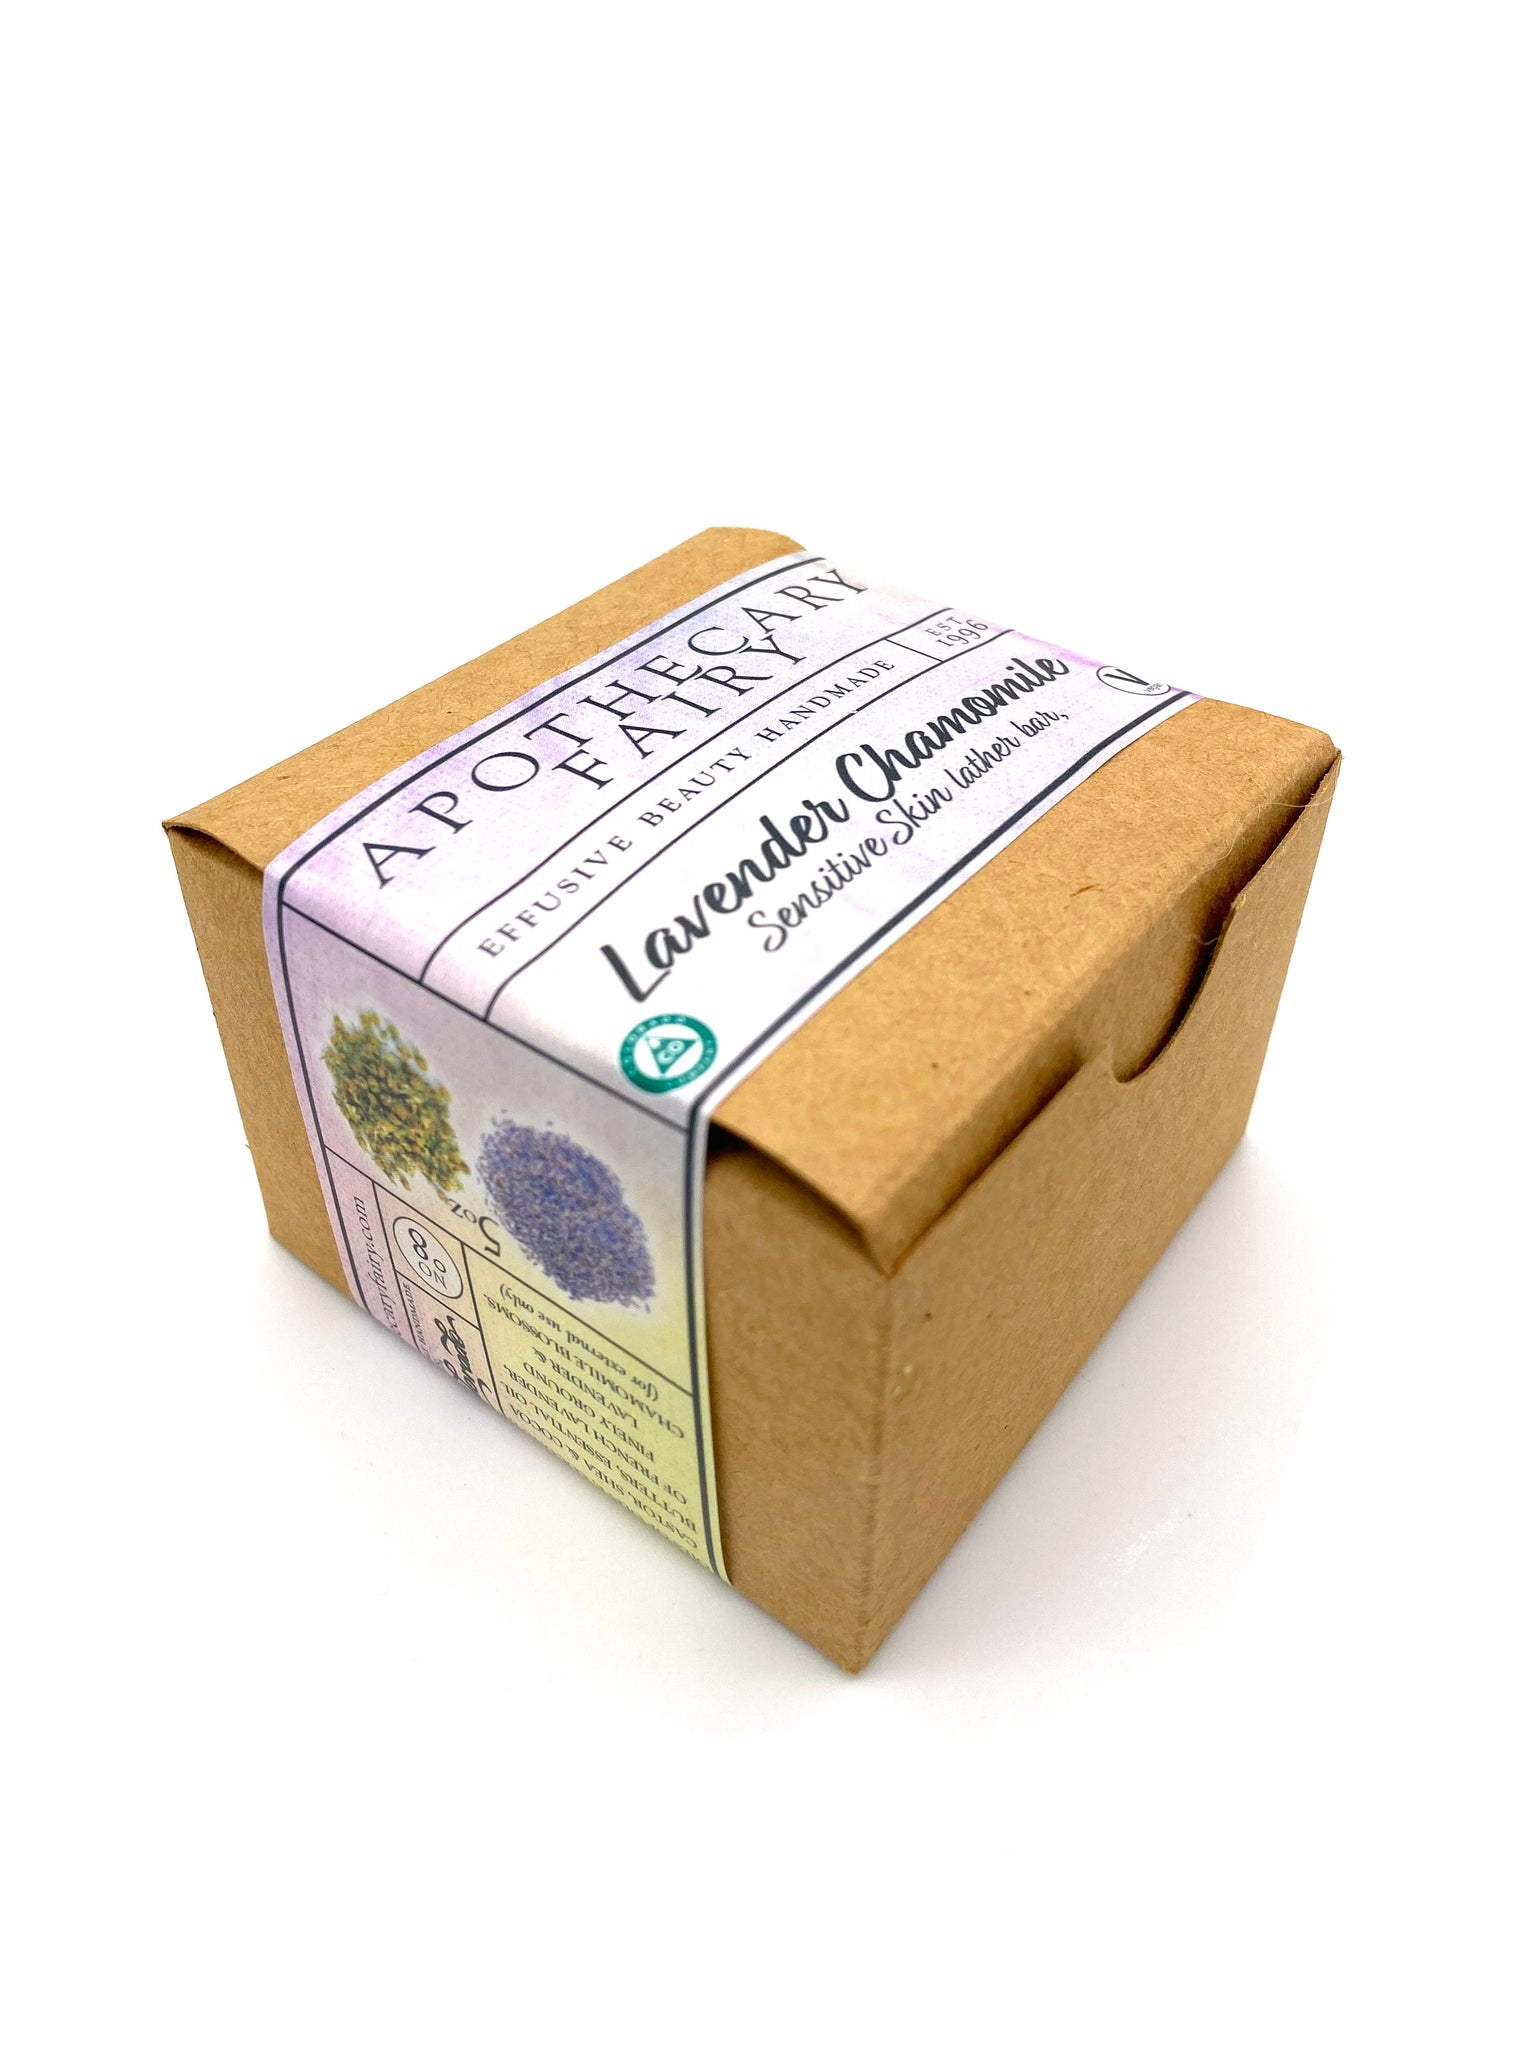 Lavender Chamomile Sensitive Skin Lather Bar 5oz - The Apothecary Fairy